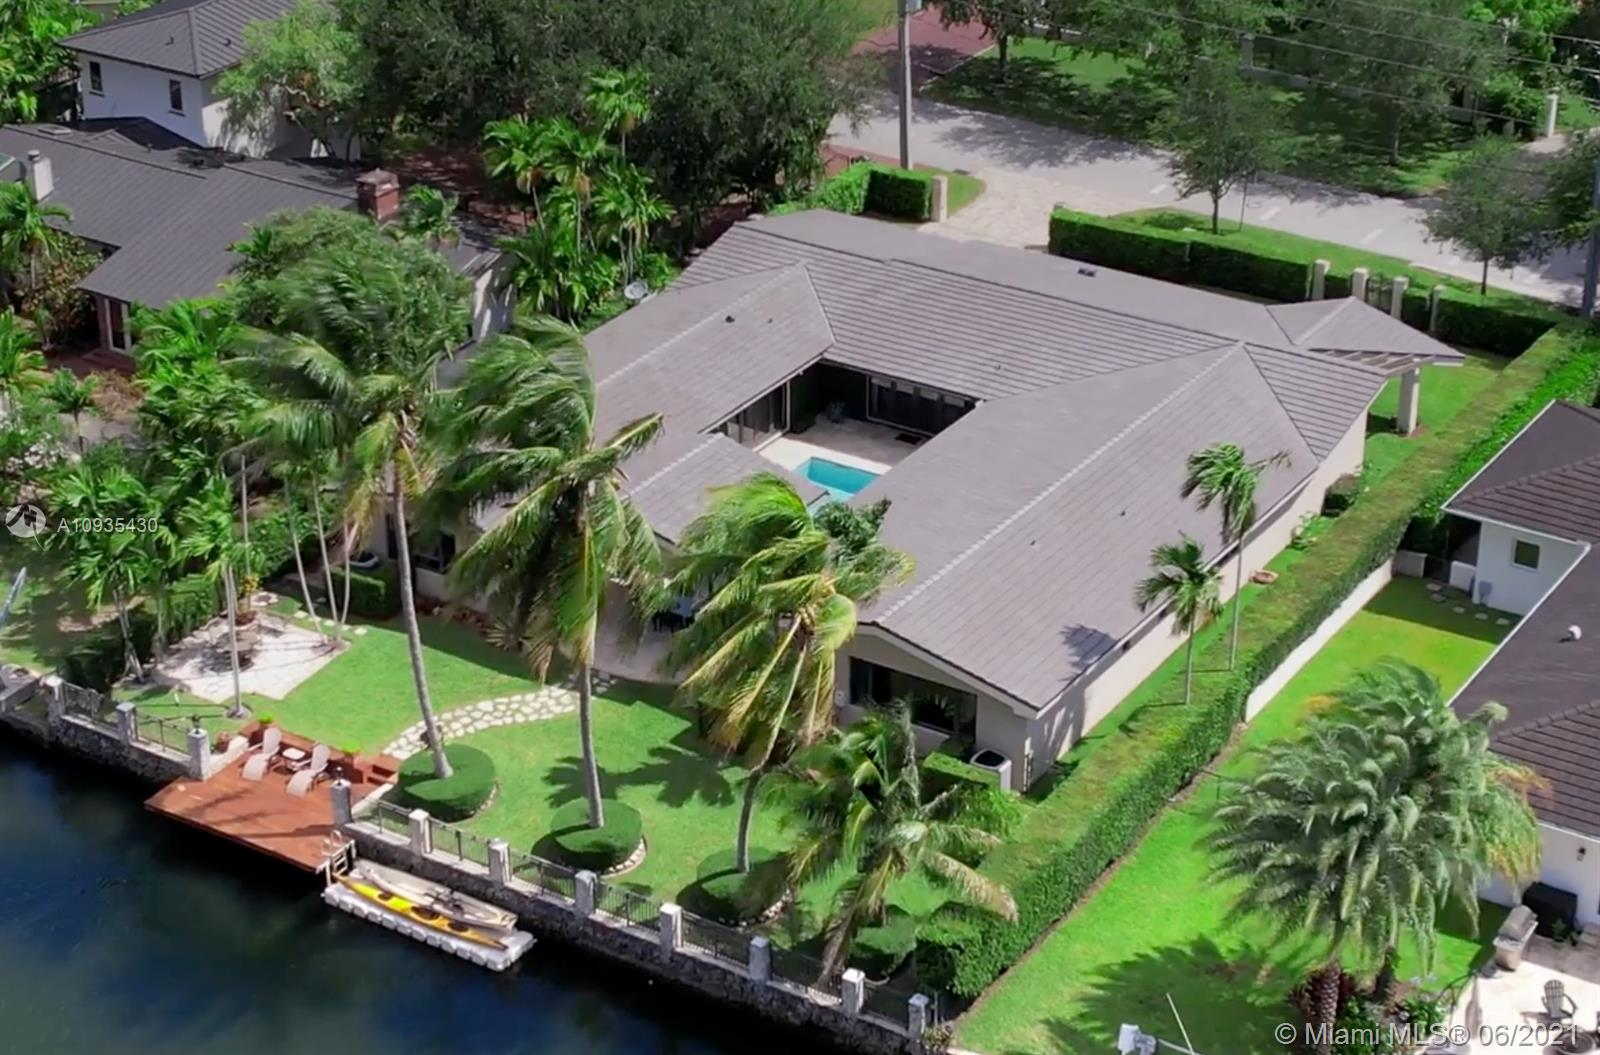 This gorgeous home is on the Coral Gables Waterway with its own dock and is just a 15-minute boat ride to beautiful Biscayne Bay. This gated property is close to shops of Merrick Park, less than 3 miles from exclusive shopping, international cuisine and entertainment of Miracle Mile. Close to both family-friendly Riviera Country Club and prestigious Biltmore Hotel golf course. Providing amenities such as gym, summer camp for kids, pool and many more! Outside, find plenty of entertainment space on the sun-soaked terrace just waiting to host friends and family in the sparkling pool and spa or while unwinding from a long day enjoying a meal under the covered patio.